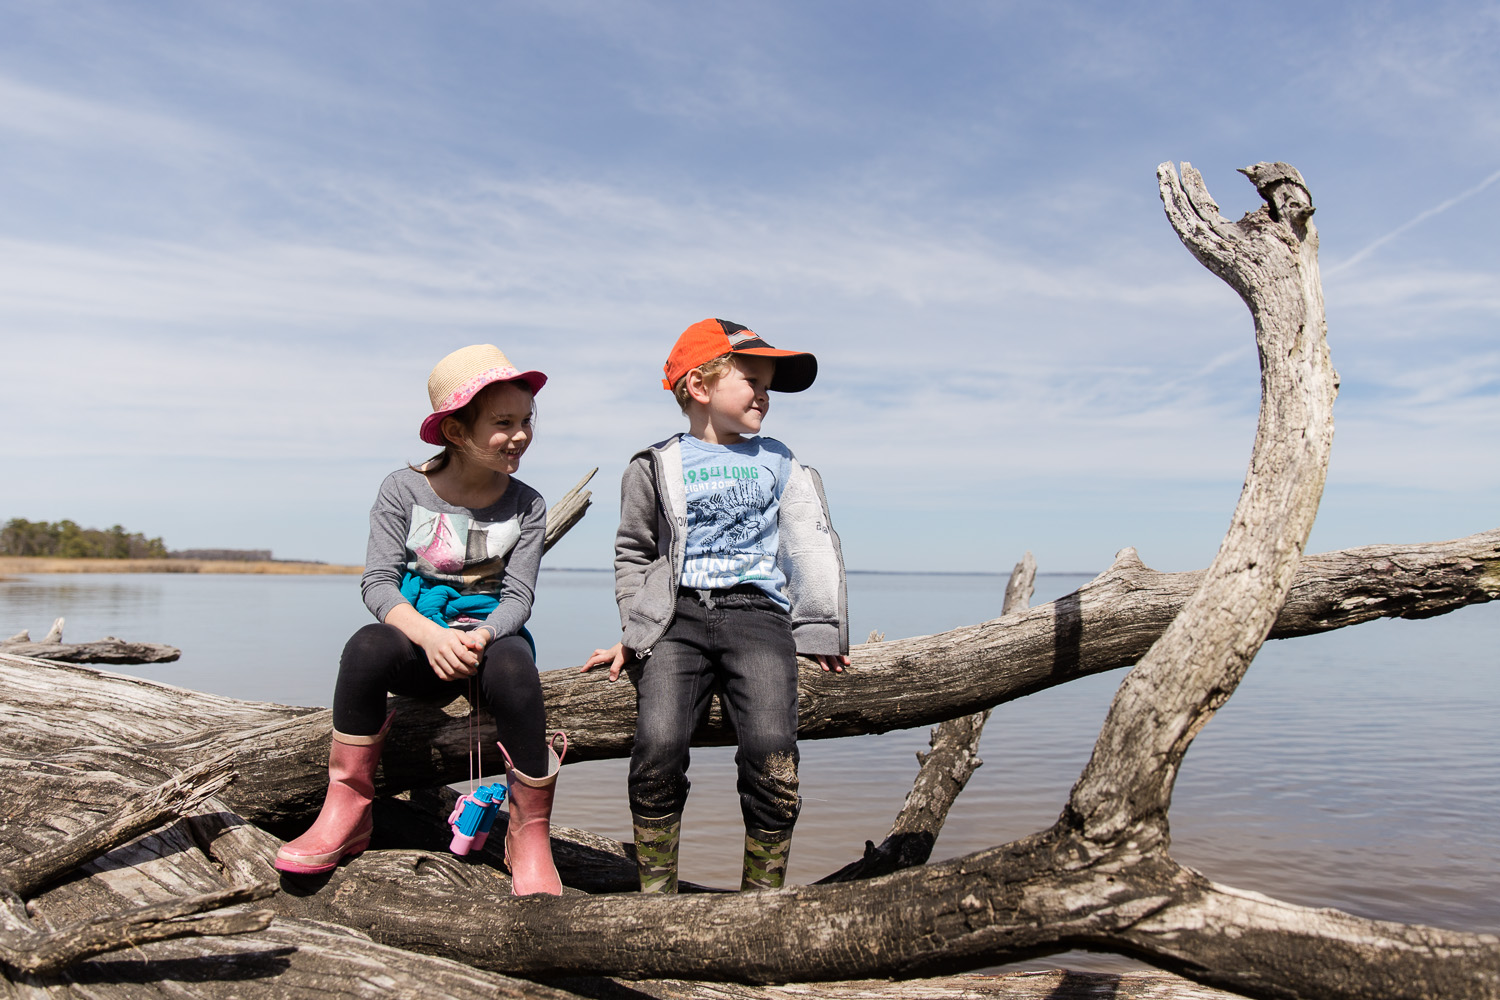 Family storytelling photos of children hiking at Eastern Neck Island in Rock Hall Maryland